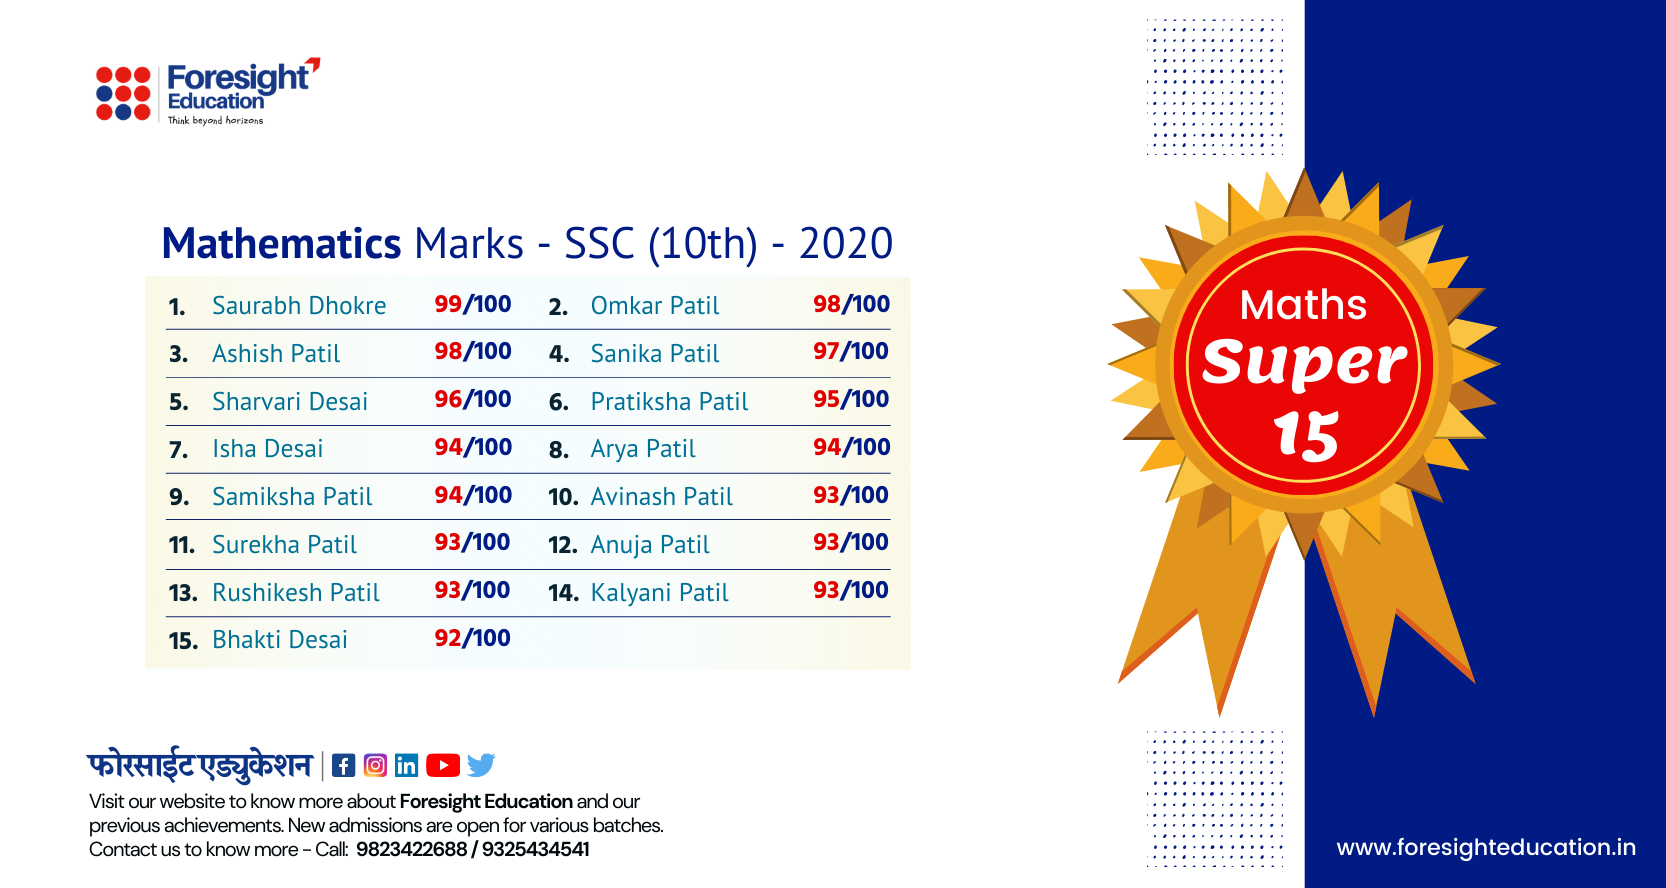 Mathematics Result SSC 2020 Batch - Foresight Education